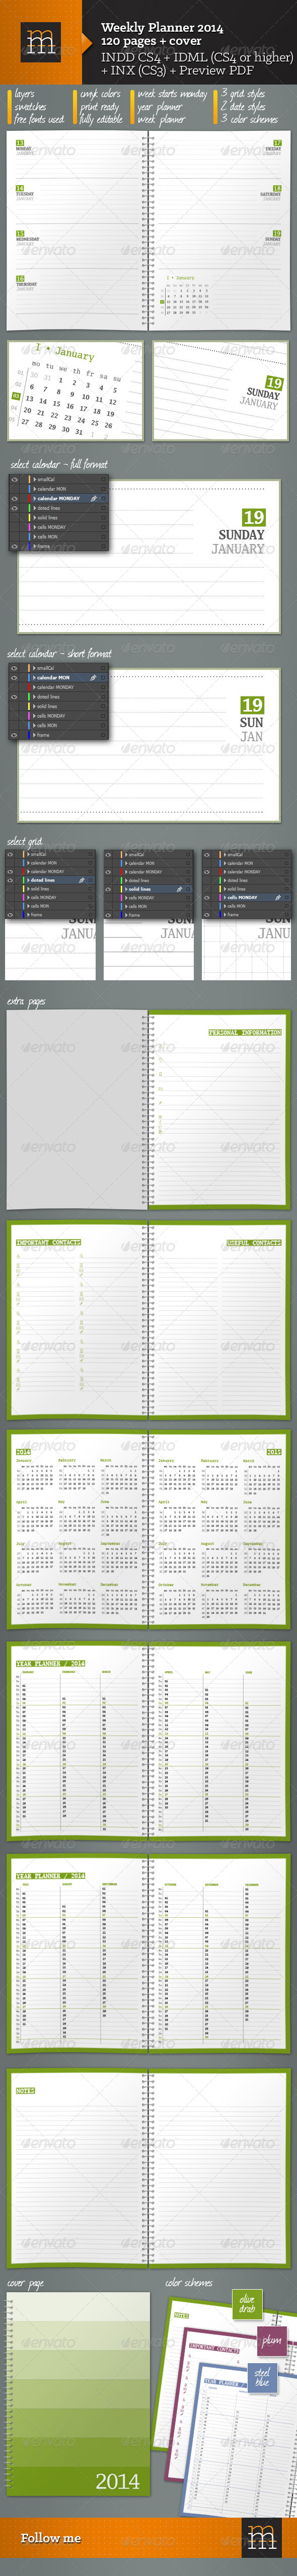 GraphicRiver Weekly Planner 2014 5933854